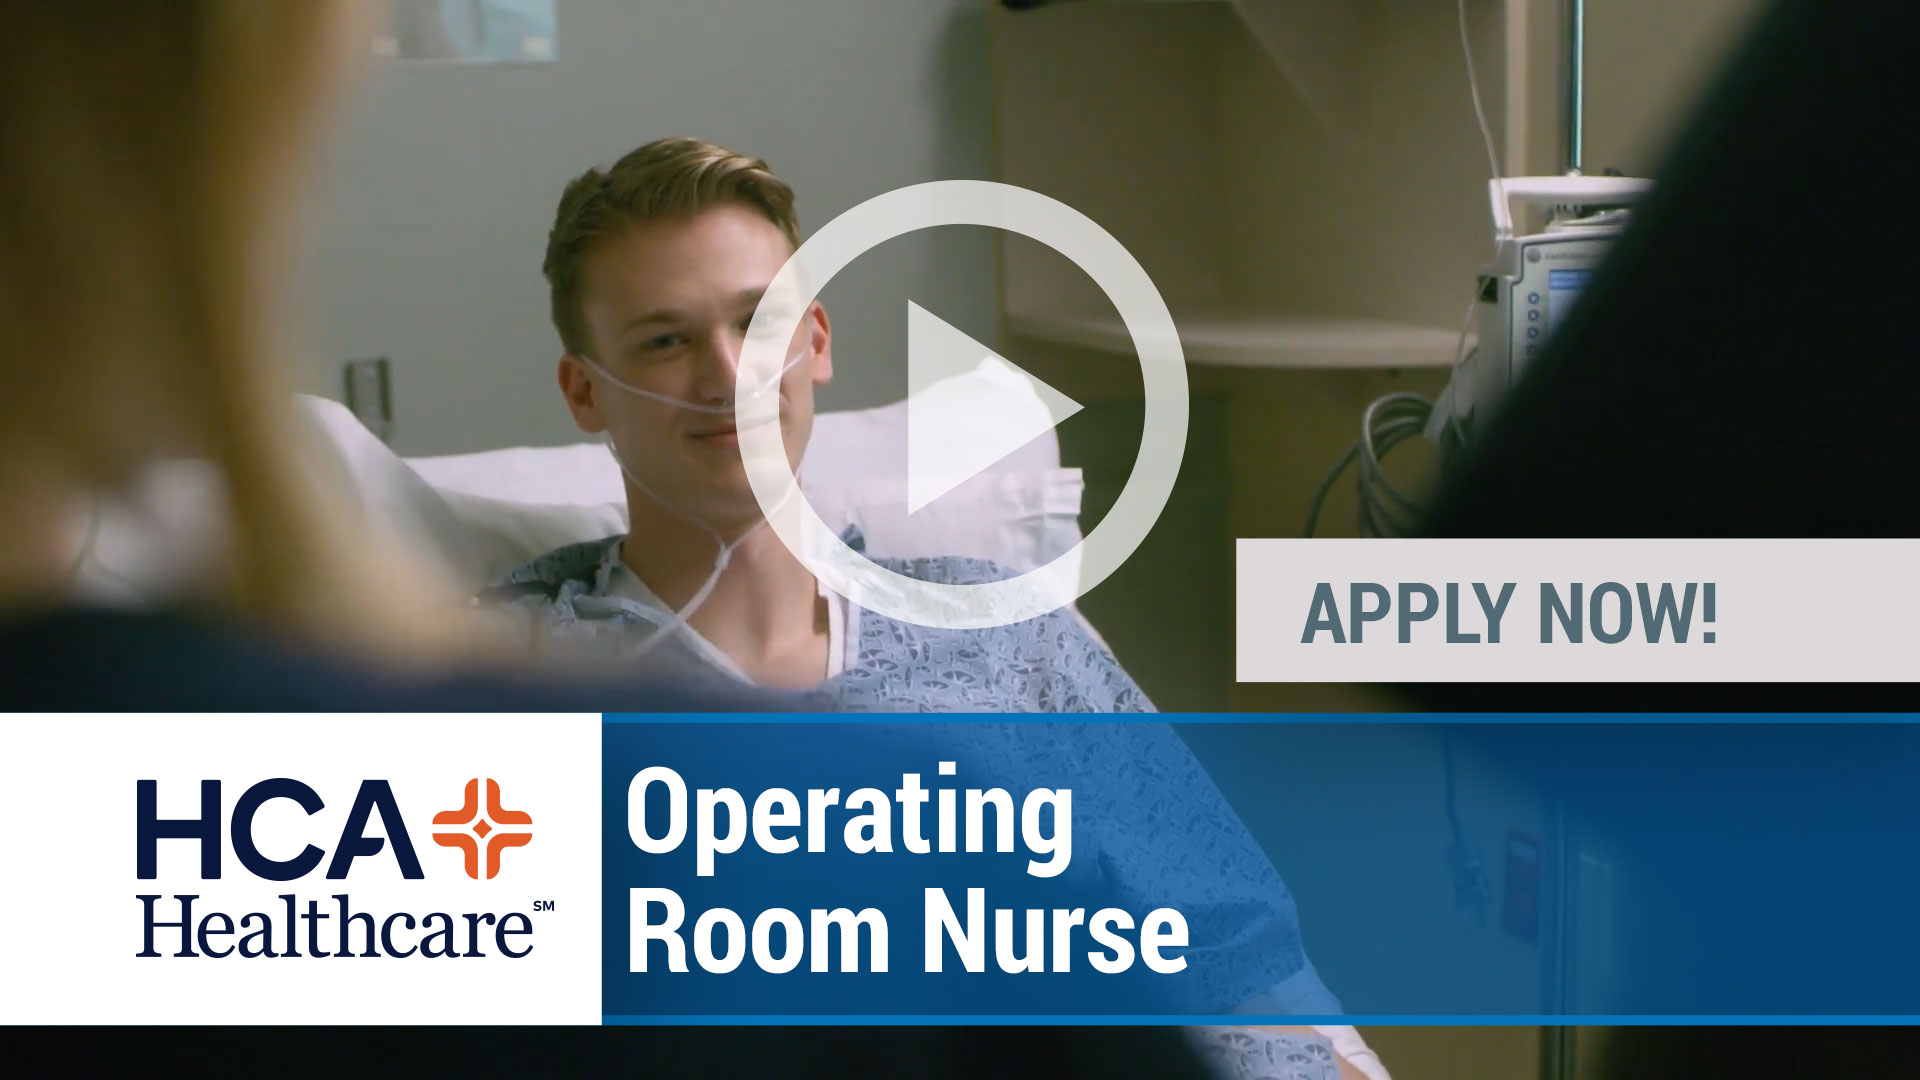 Watch our careers video for available job opening Operating Room Nurse in Tomball, Texas